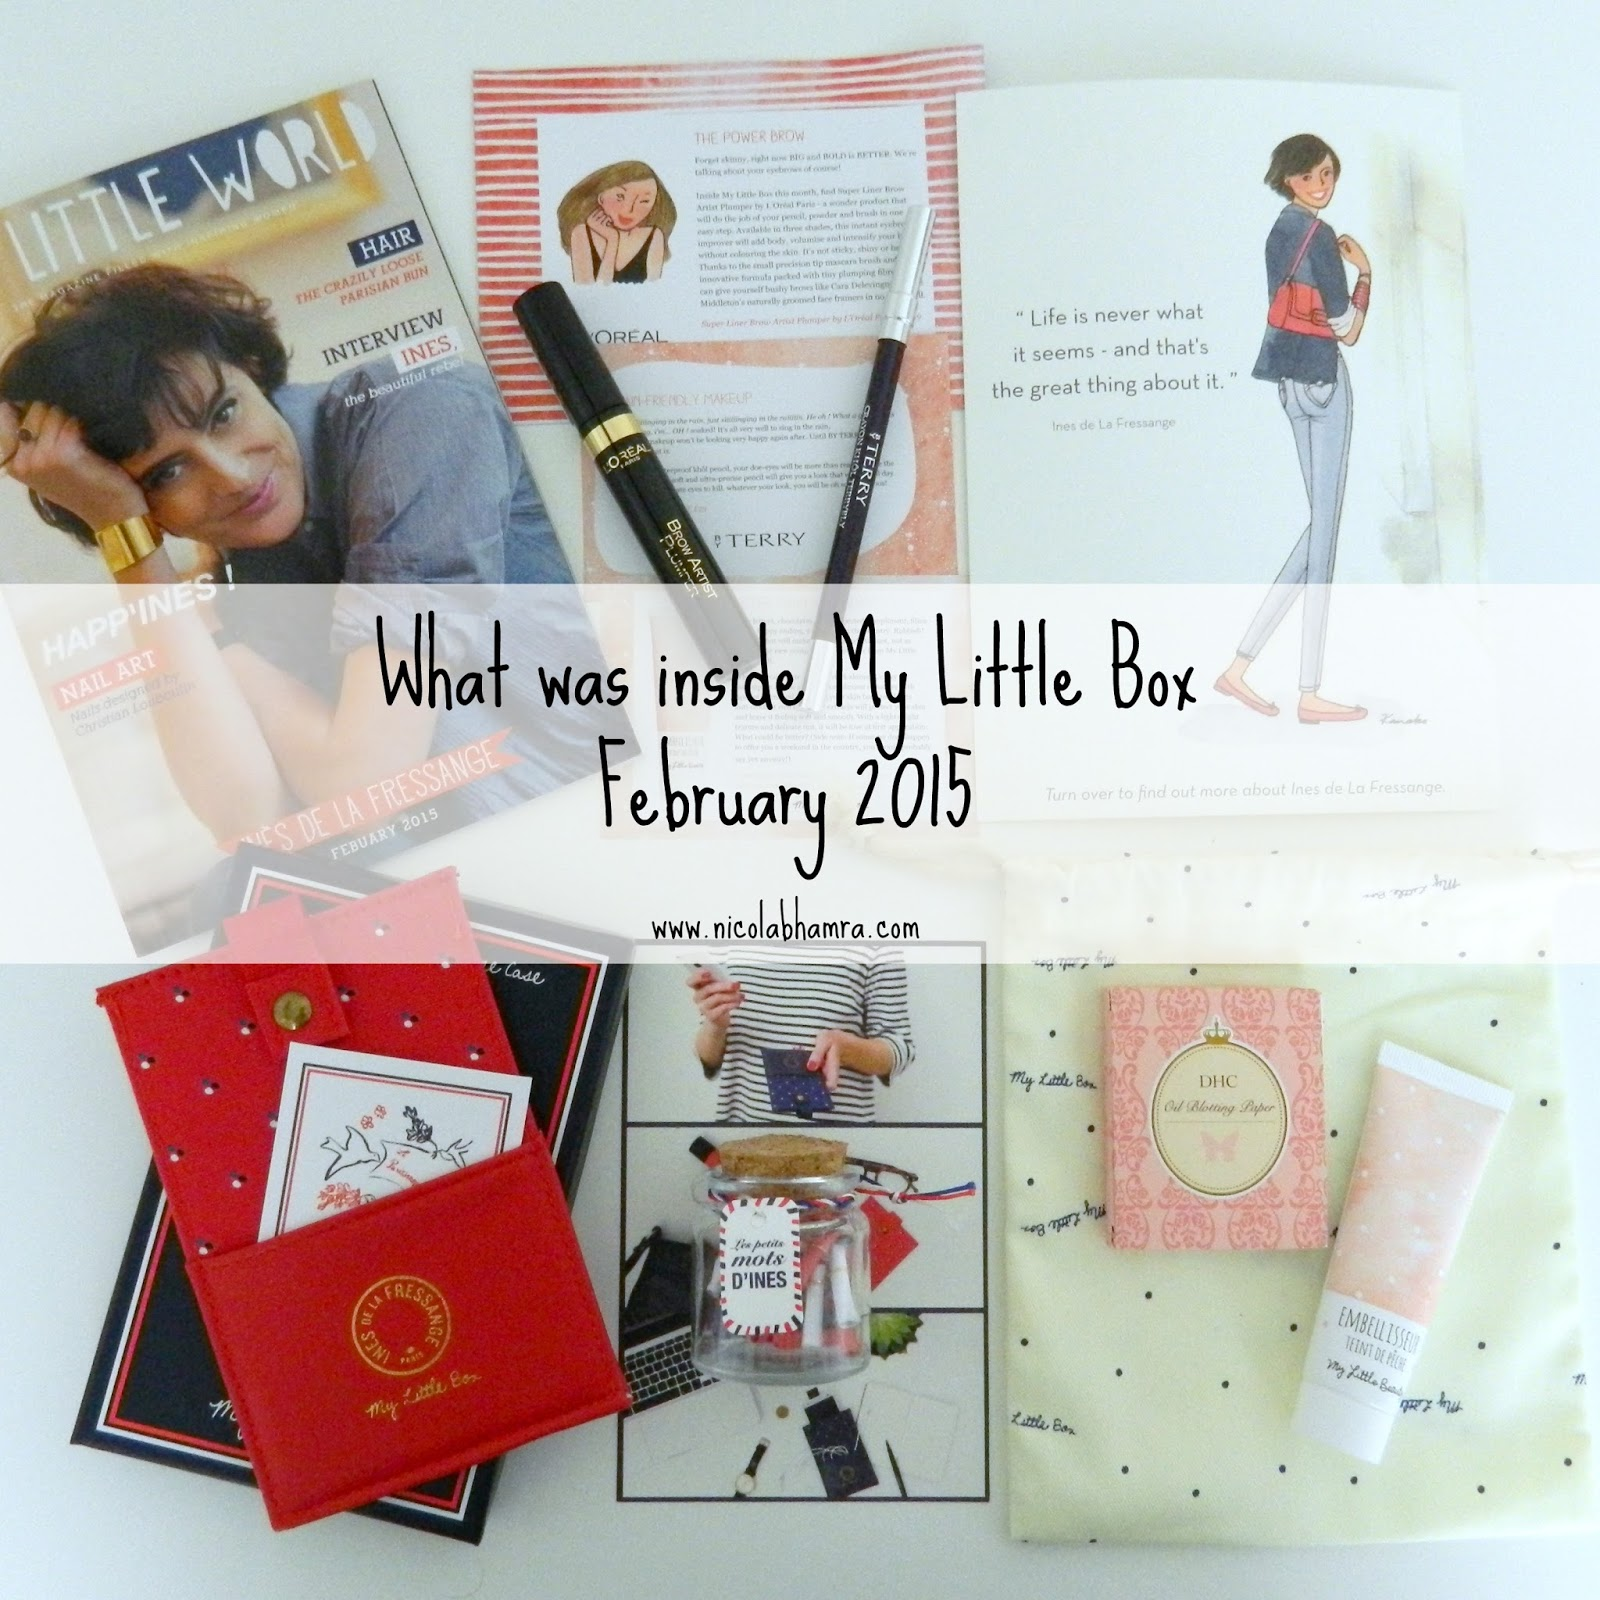 My Little Box, February 2015 review